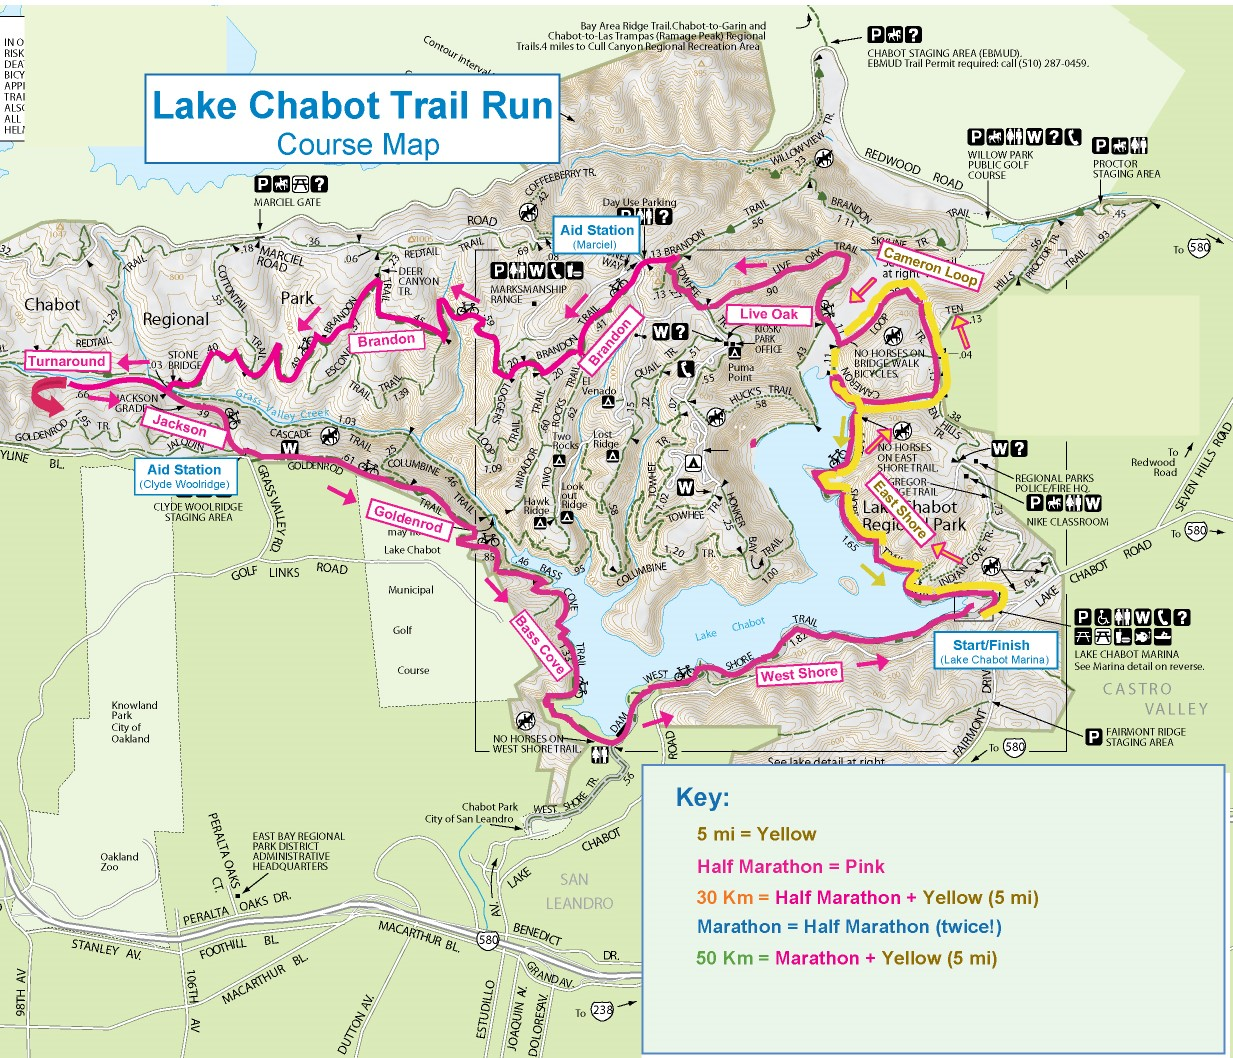 Lake Chabot on contra loma map, caldwell map, las trampas map, diablo valley map, hartnell map, cull canyon map, santiago canyon map, quarry lakes map, allan hancock map, carroll map, frank's map, cal university map, los medanos map, berkeley city map, cosumnes river map,